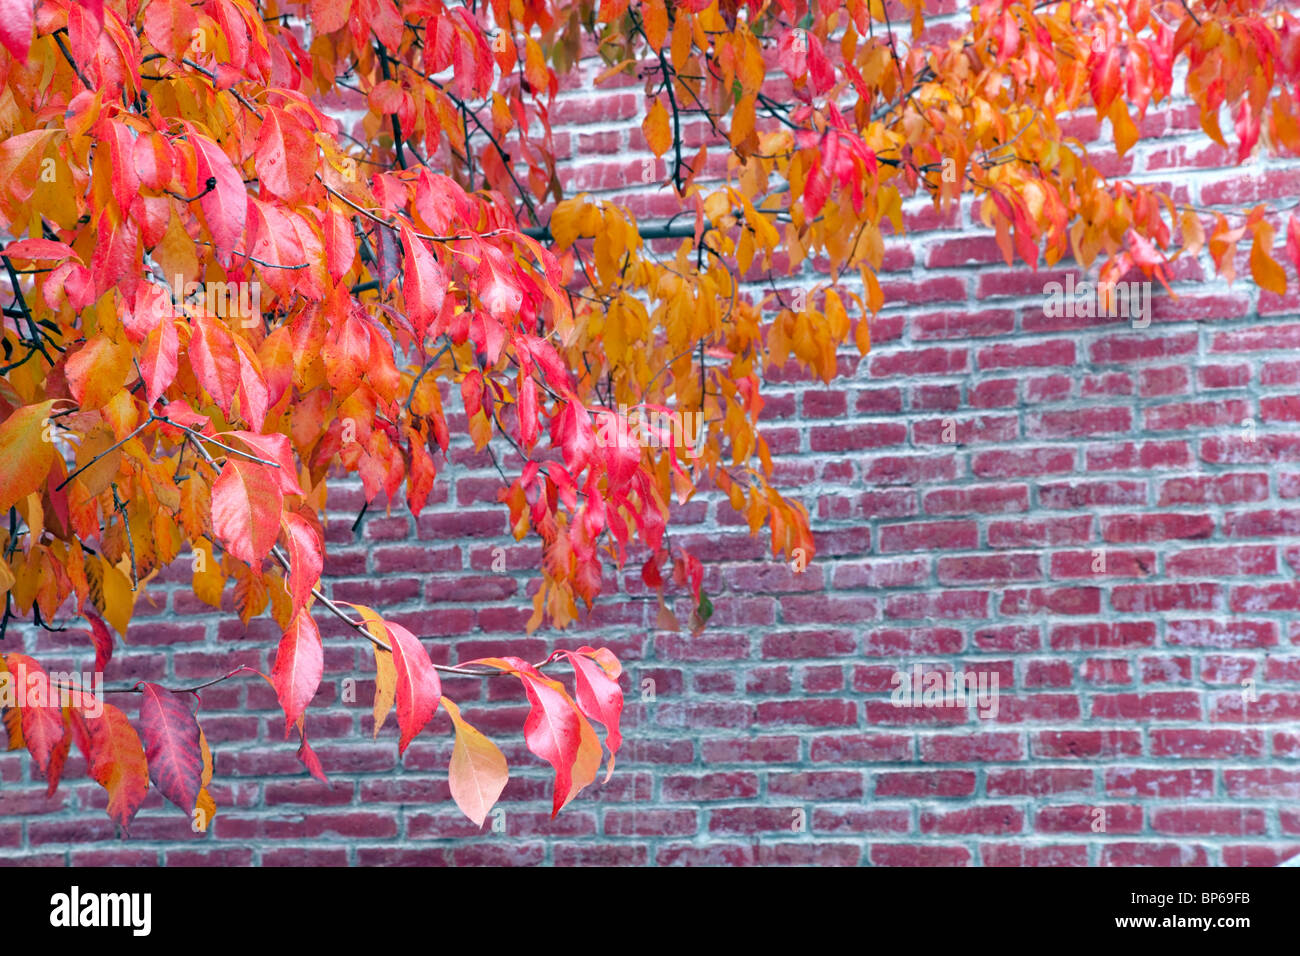 Fall color next to brick building. Jacksonville, Oregon - Stock Image